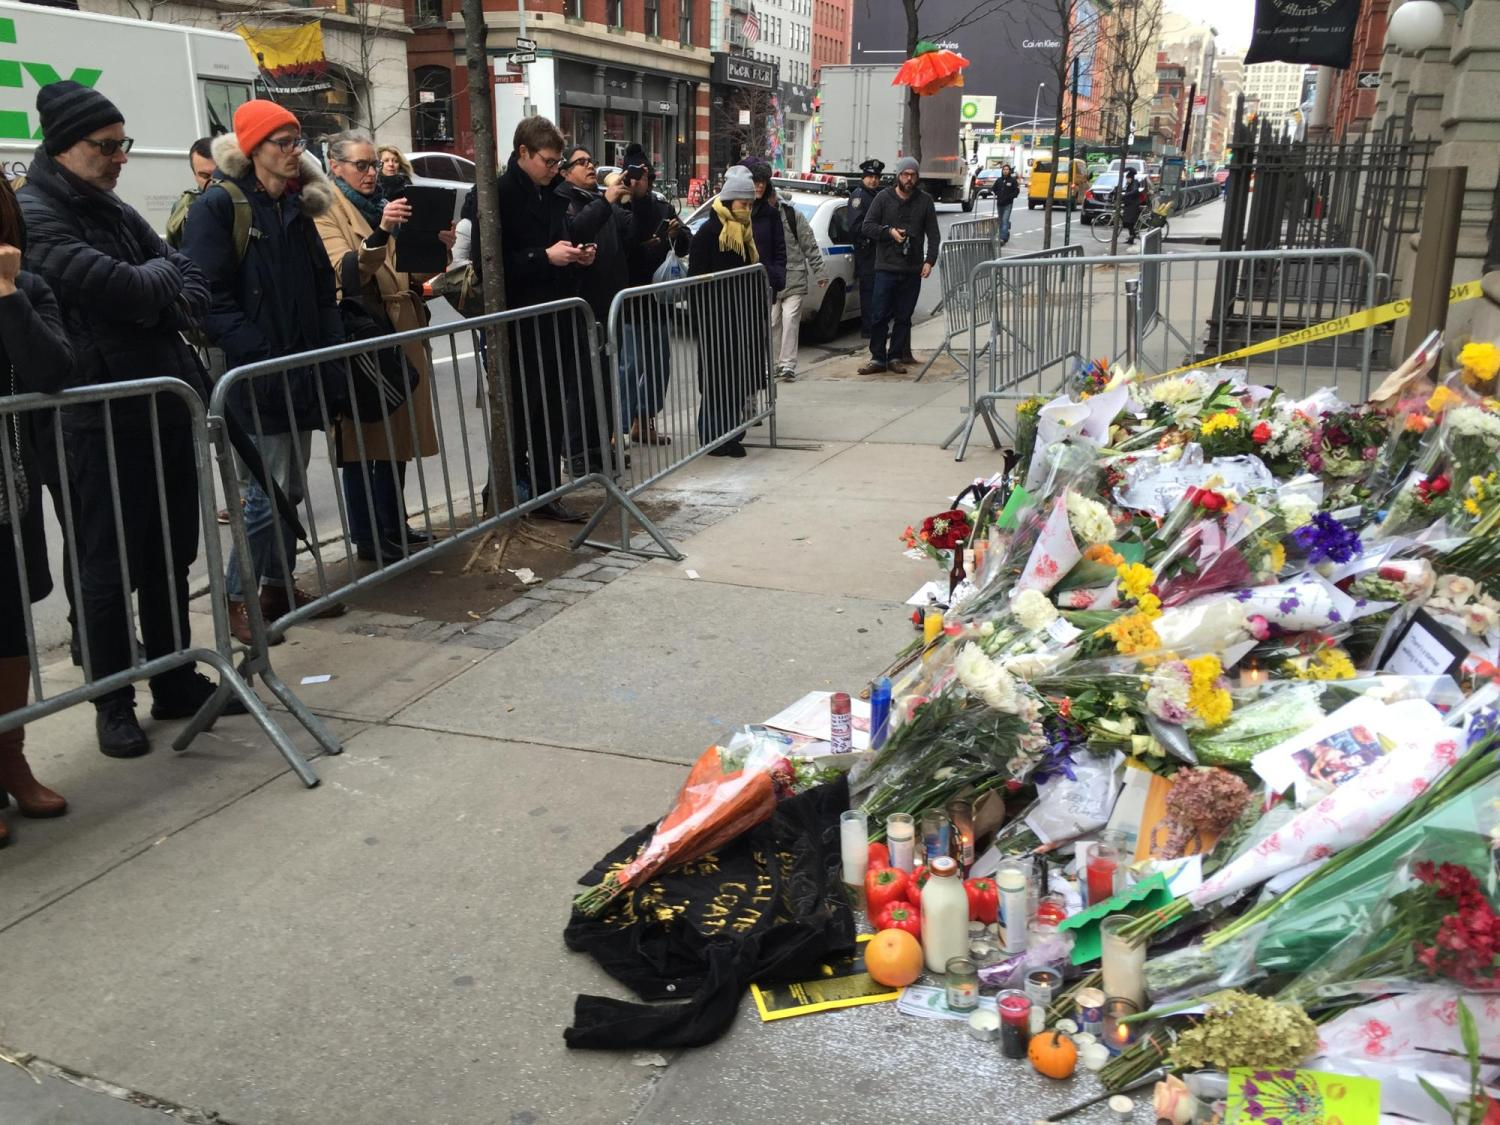 Photo of Bowie memorial and people taking photos